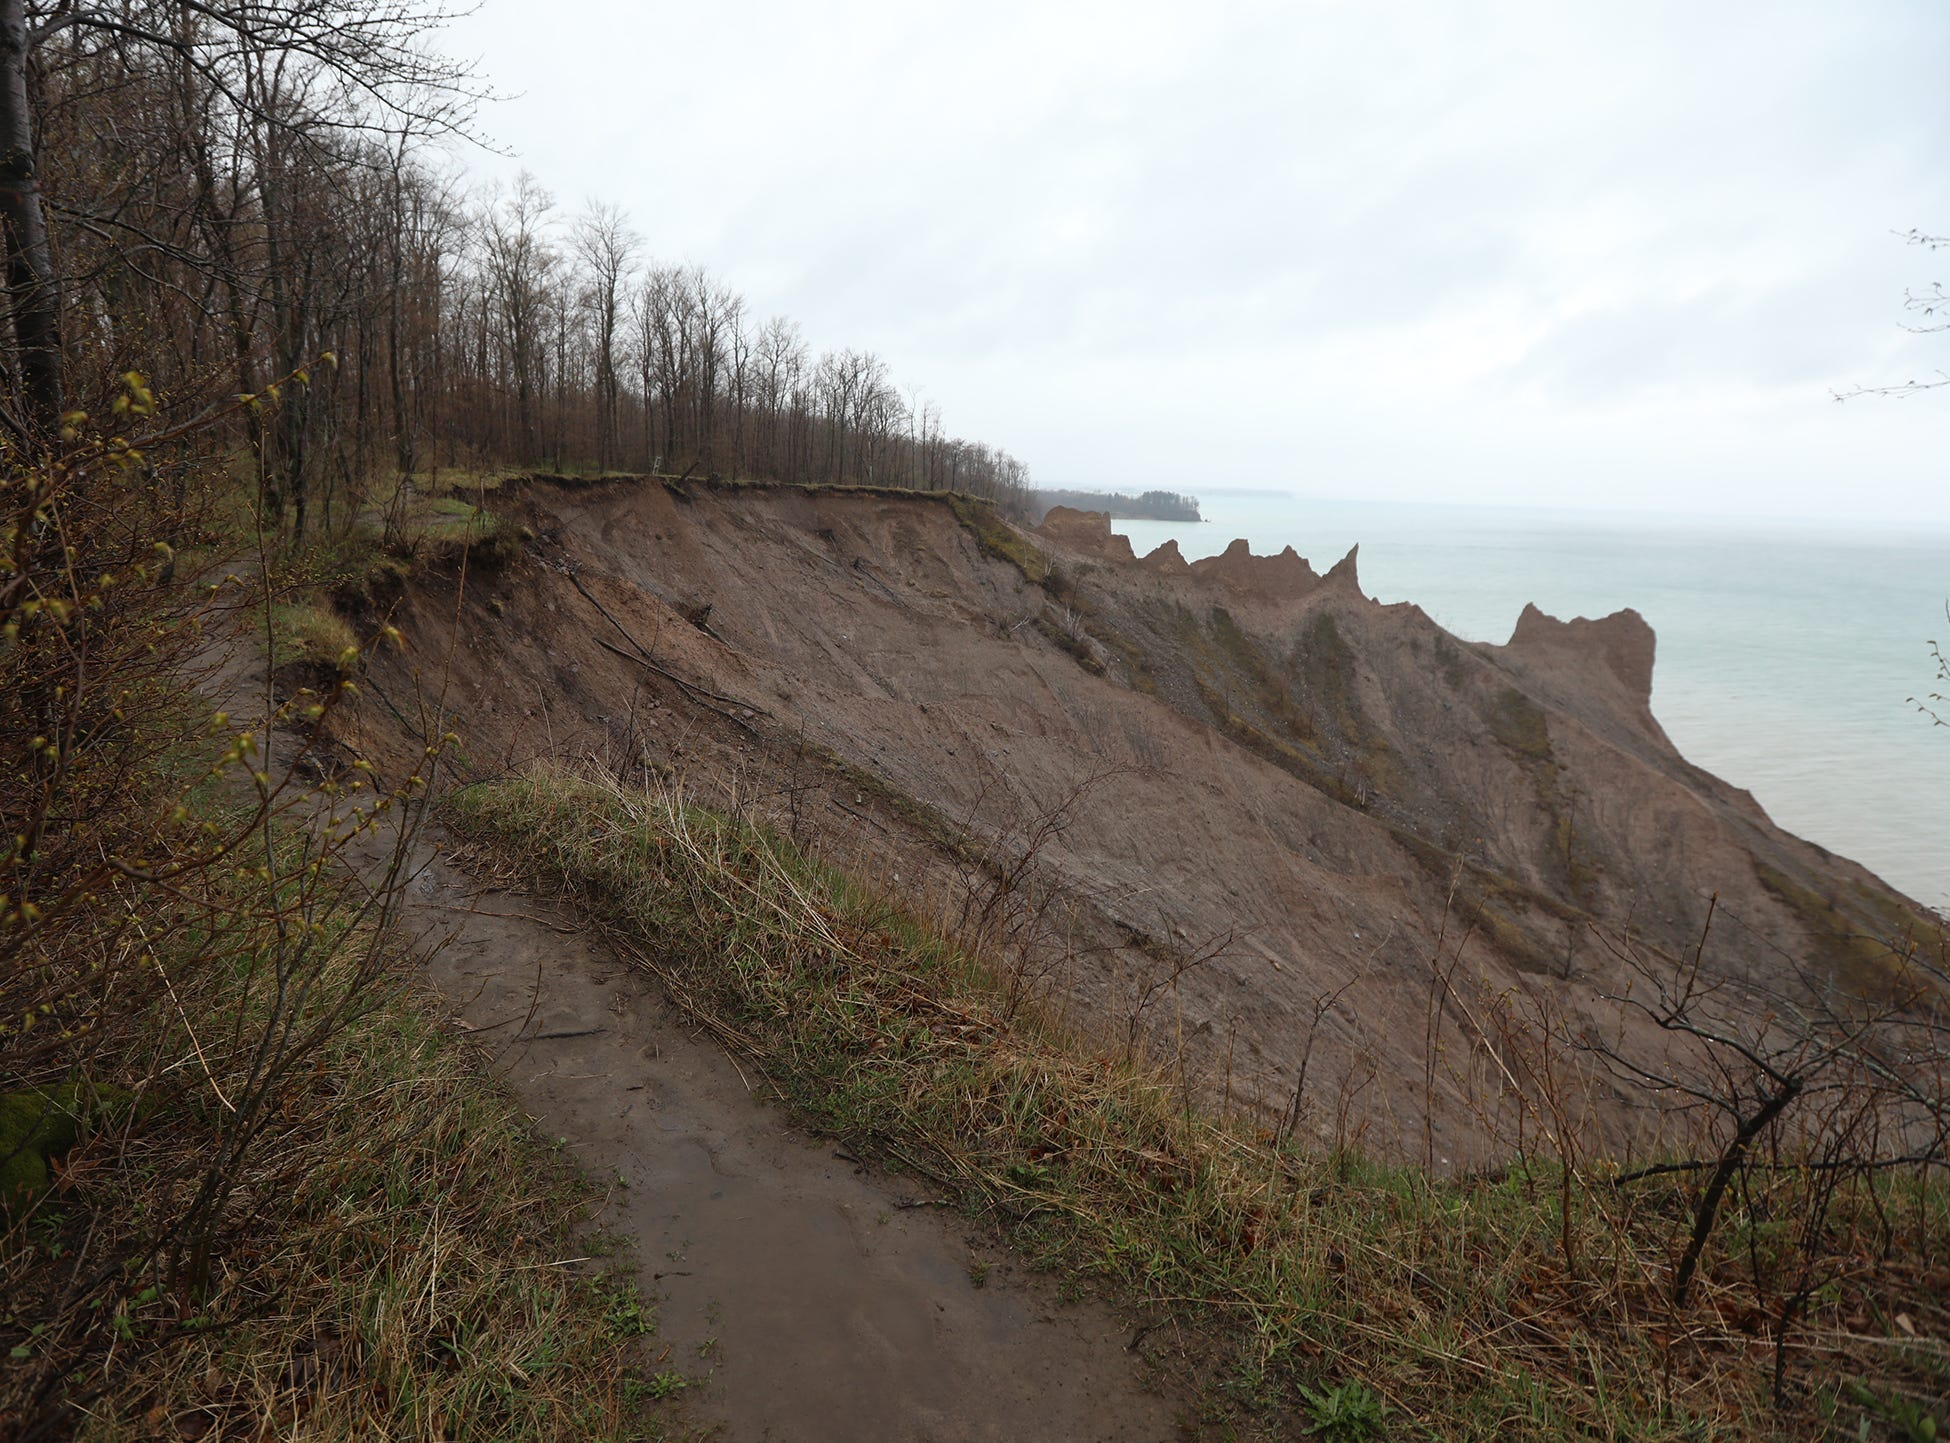 Some of the bluff trail has fallen off.  An alternate path now brings hikers close but not to the edge of the bluffs.